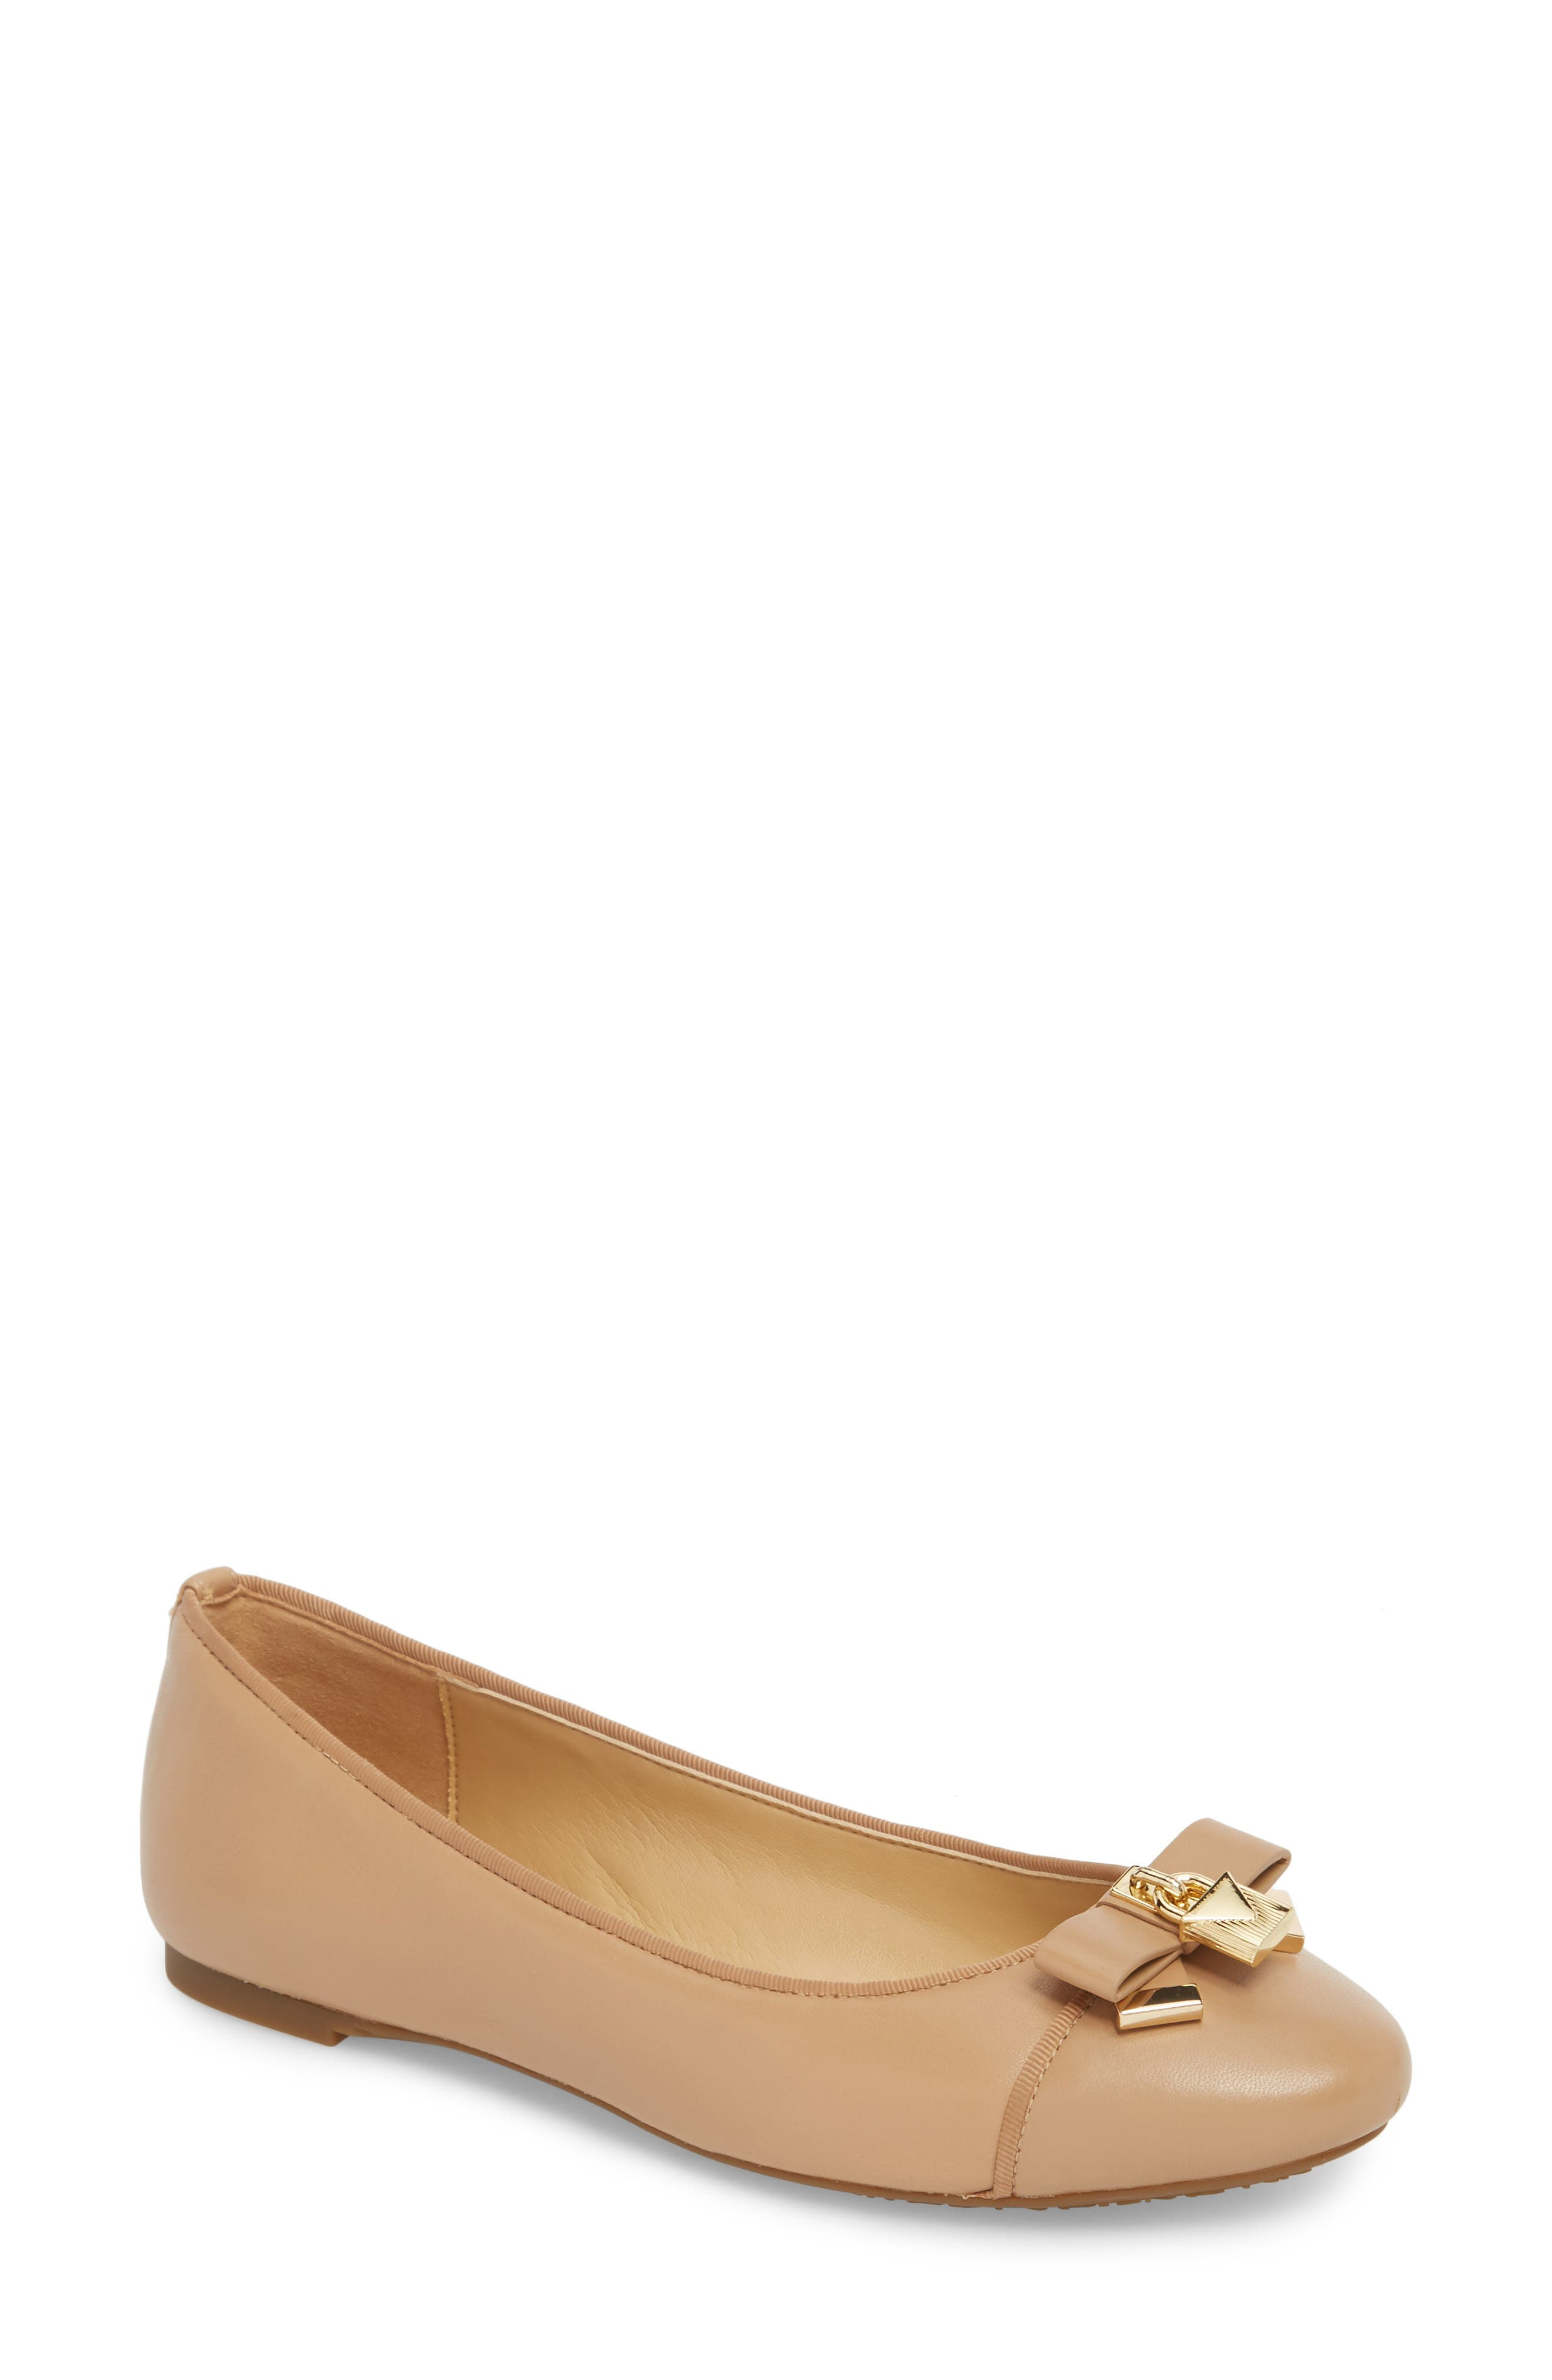 Alice Ballet Flat,                         Main,                         color, Toffee Leather